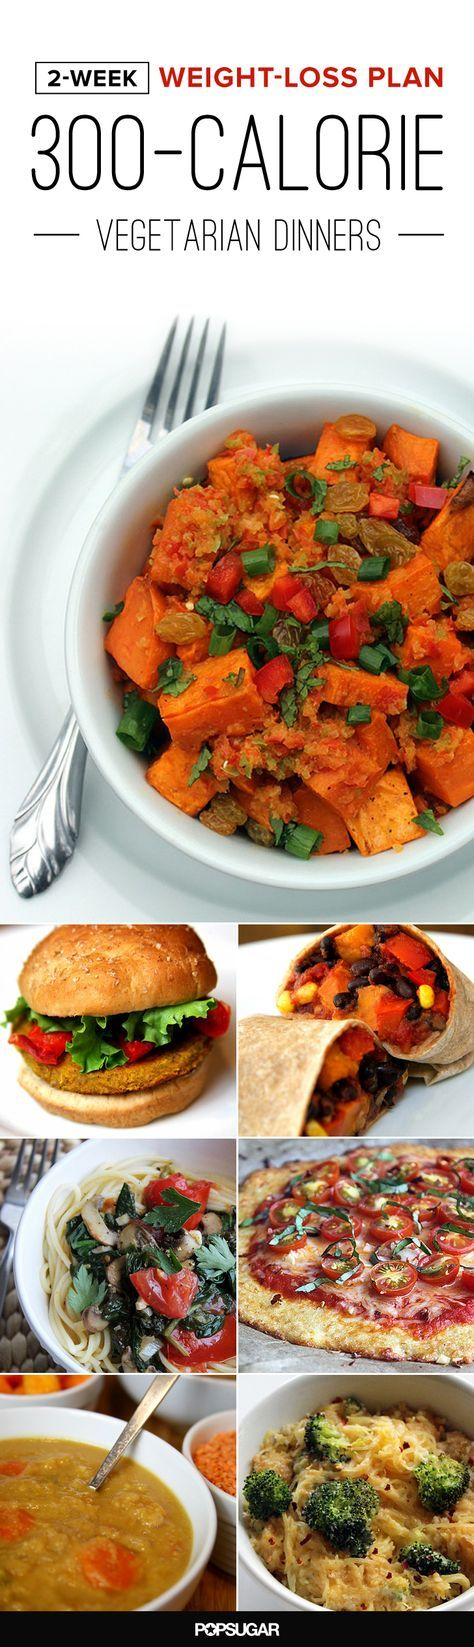 If you're used to eating big meals at night and are at a loss for what to make, here's a two-week (14-day) dinner plan — all recipes are vegetarian and around 300 calories.